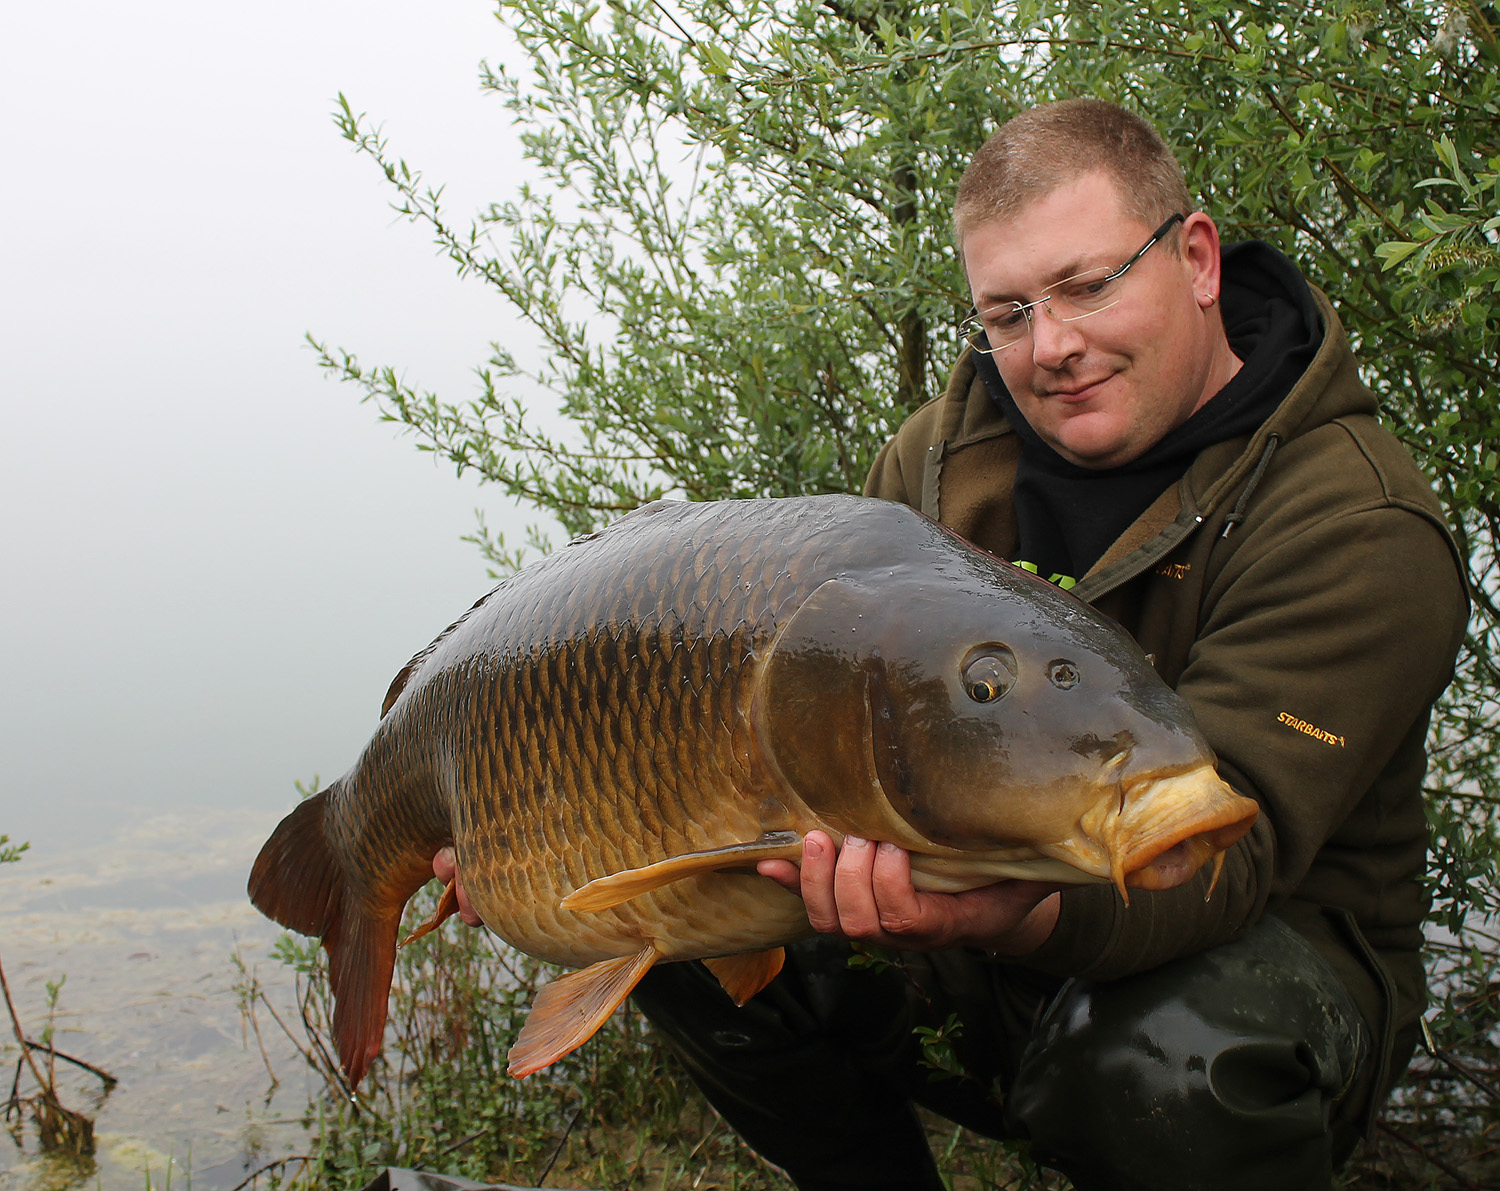 http://www.starbaits.com/fichiers/images/team/gallery/THIERRY_Vincent/photo5-THIERRY-Vincent.JPG